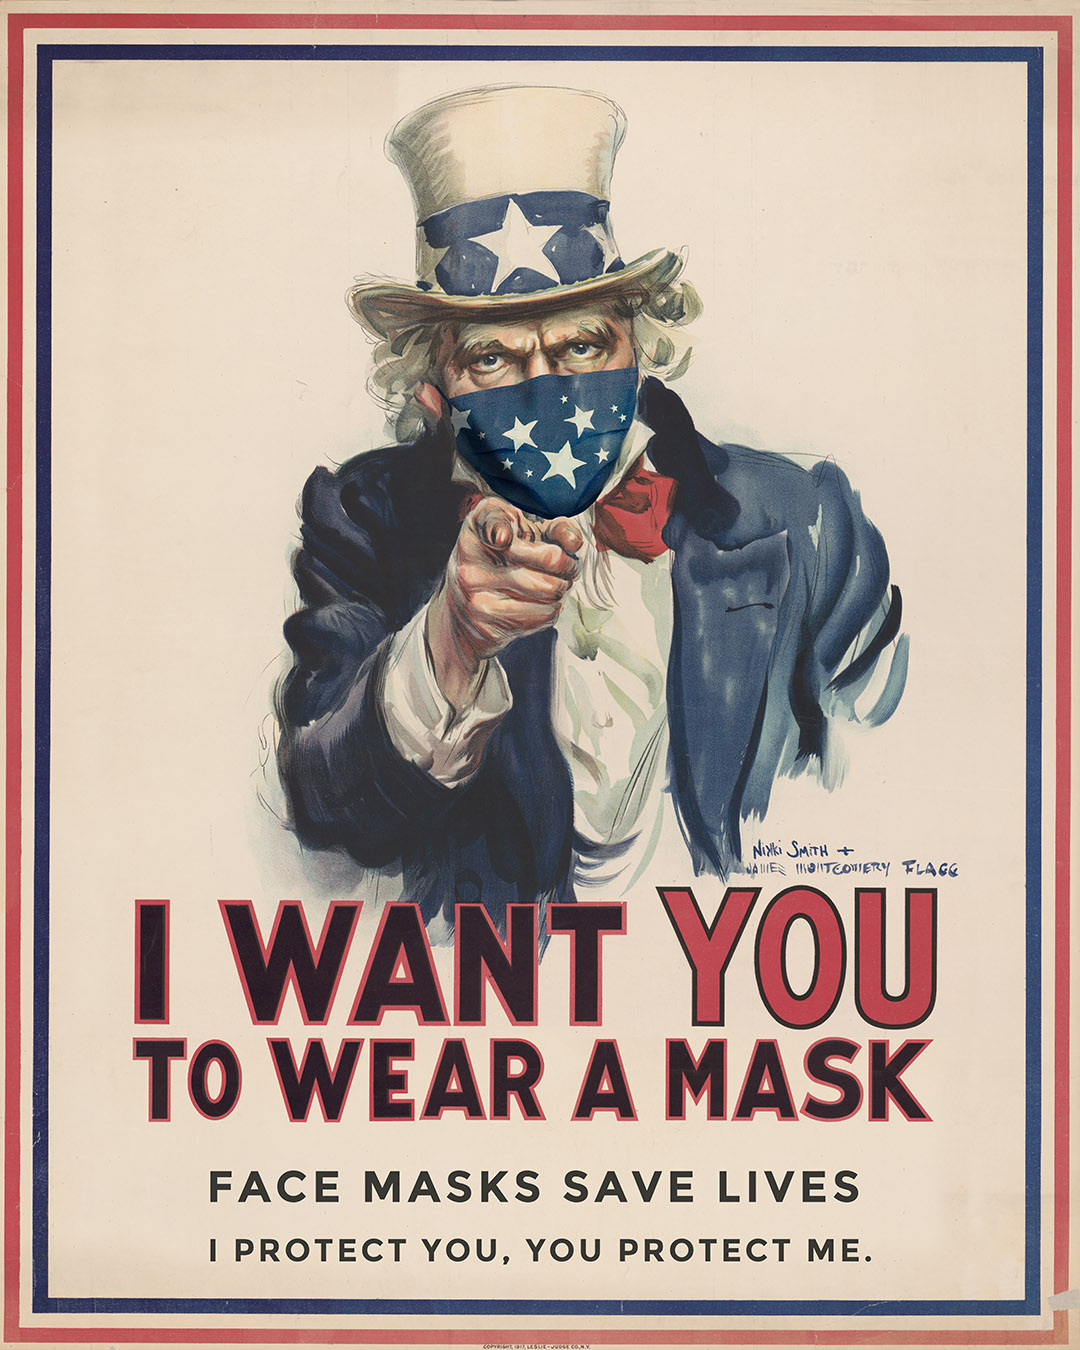 I Want You to Wear a Mask by Nikki Smith